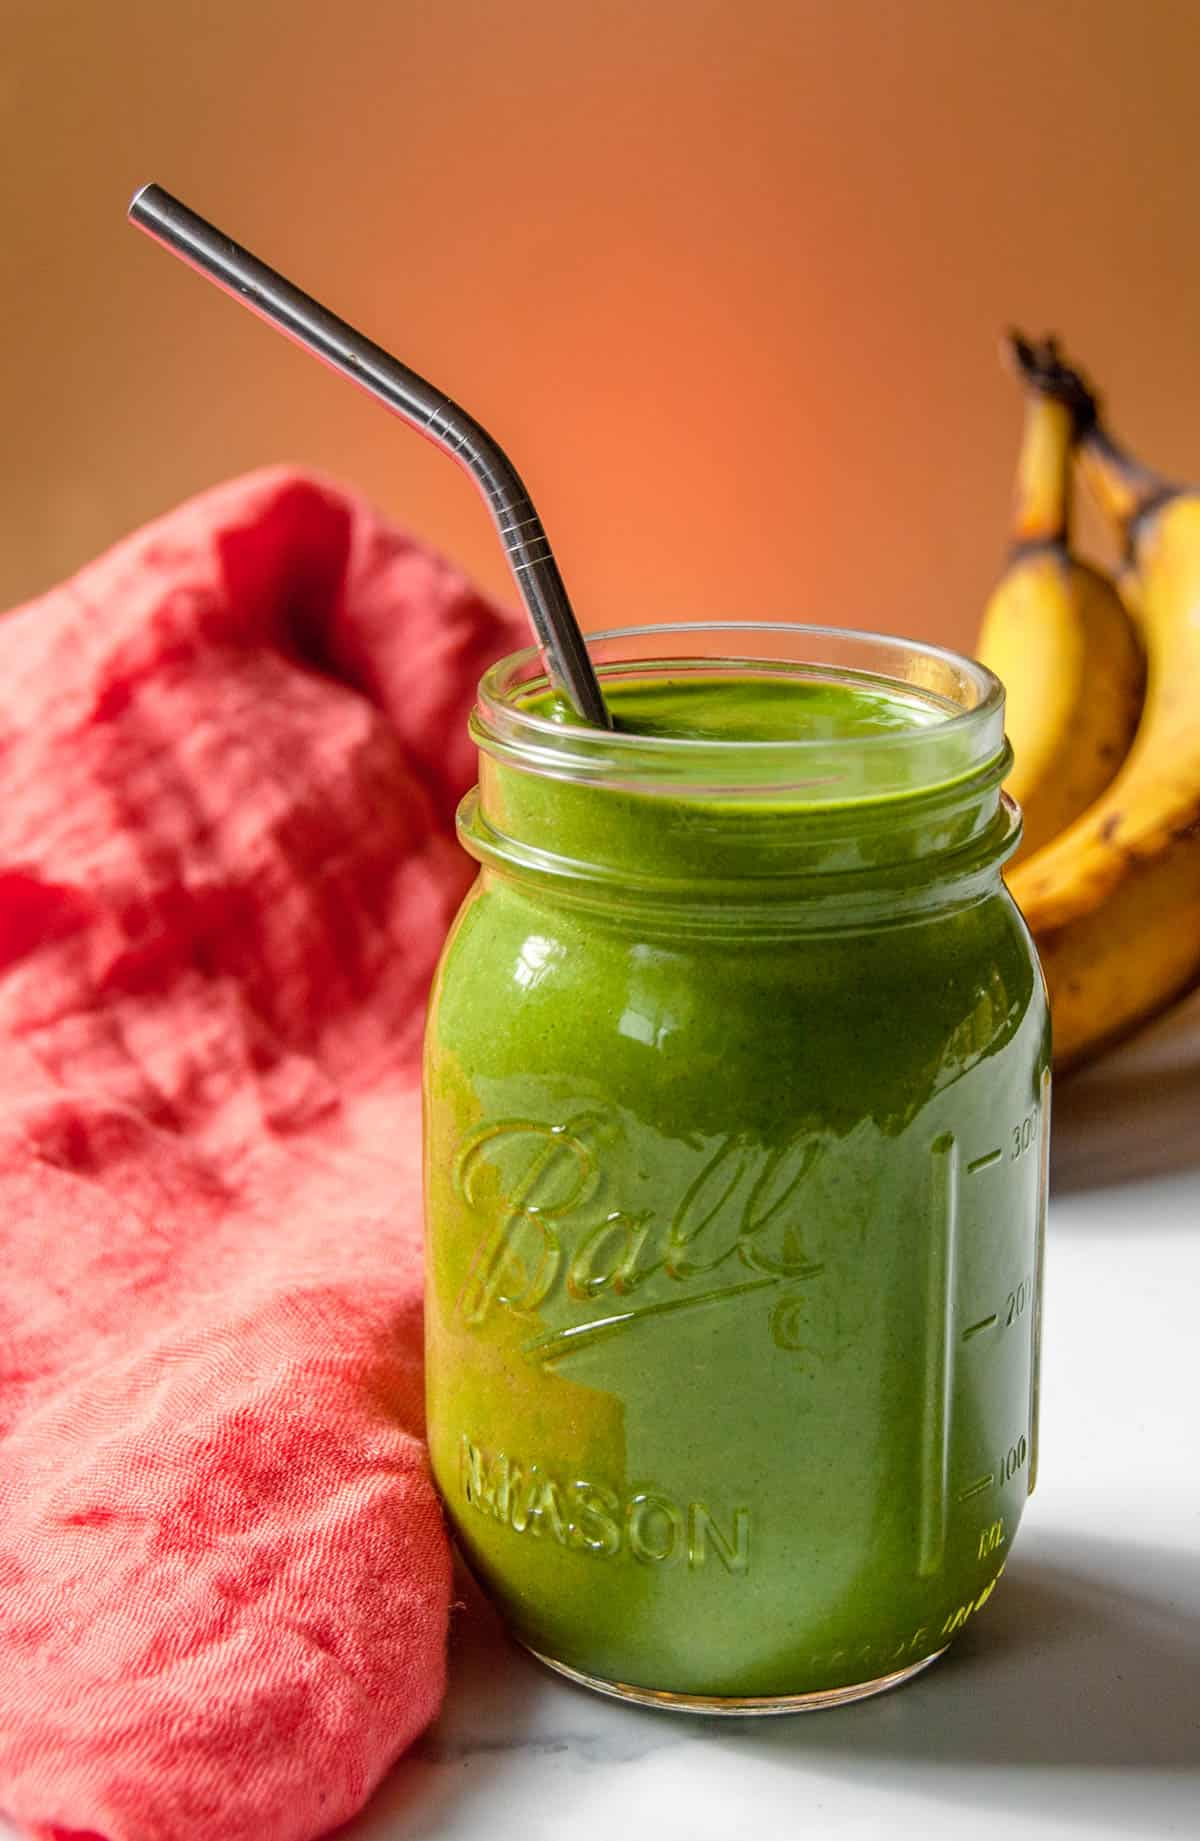 Whole food plant-based green smoothie in a mason jar with reusable straw